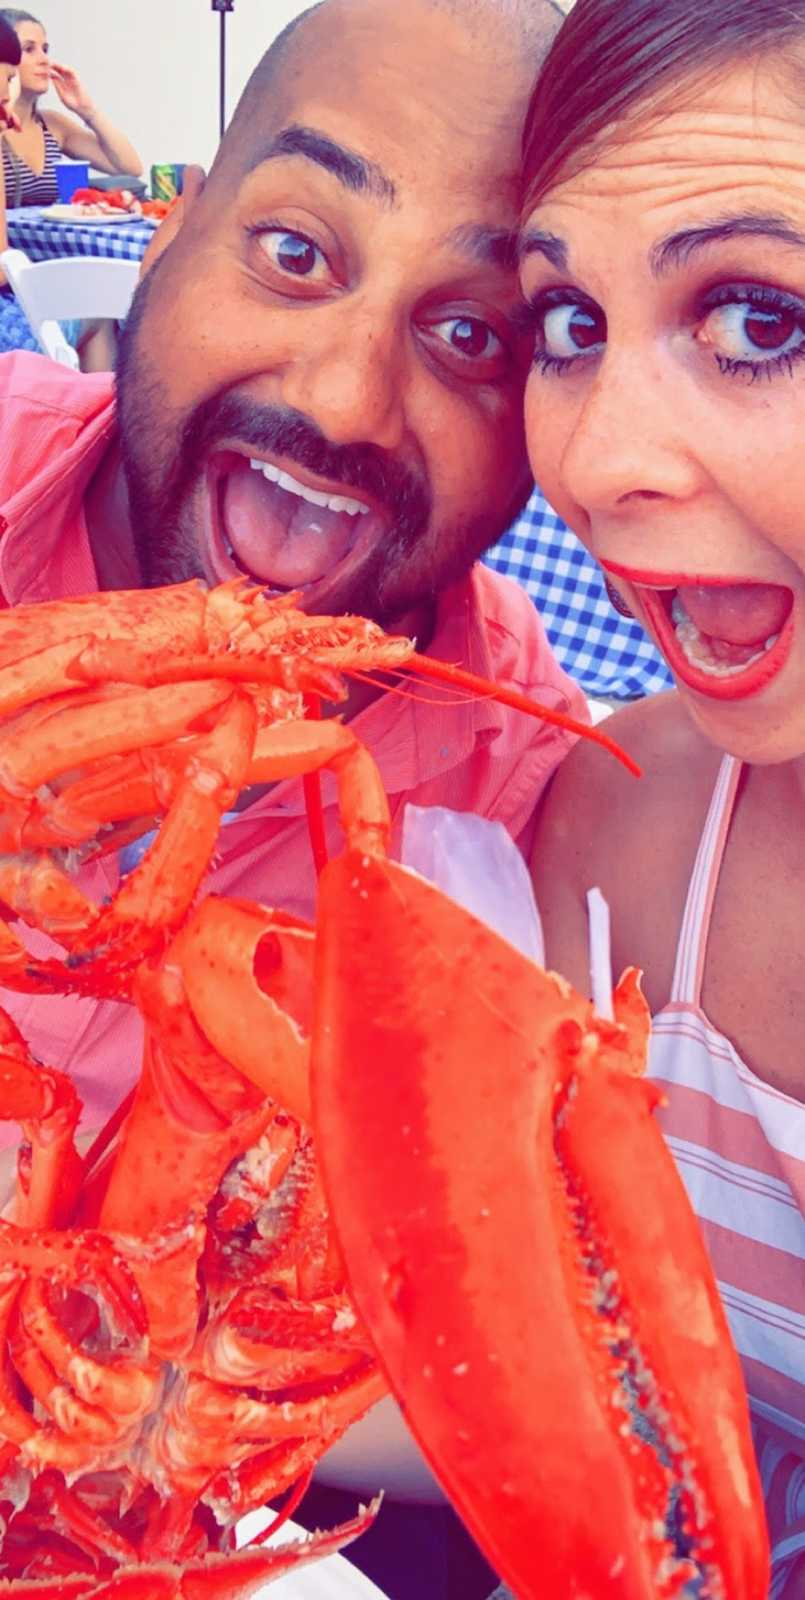 Man and woman looking at lobster